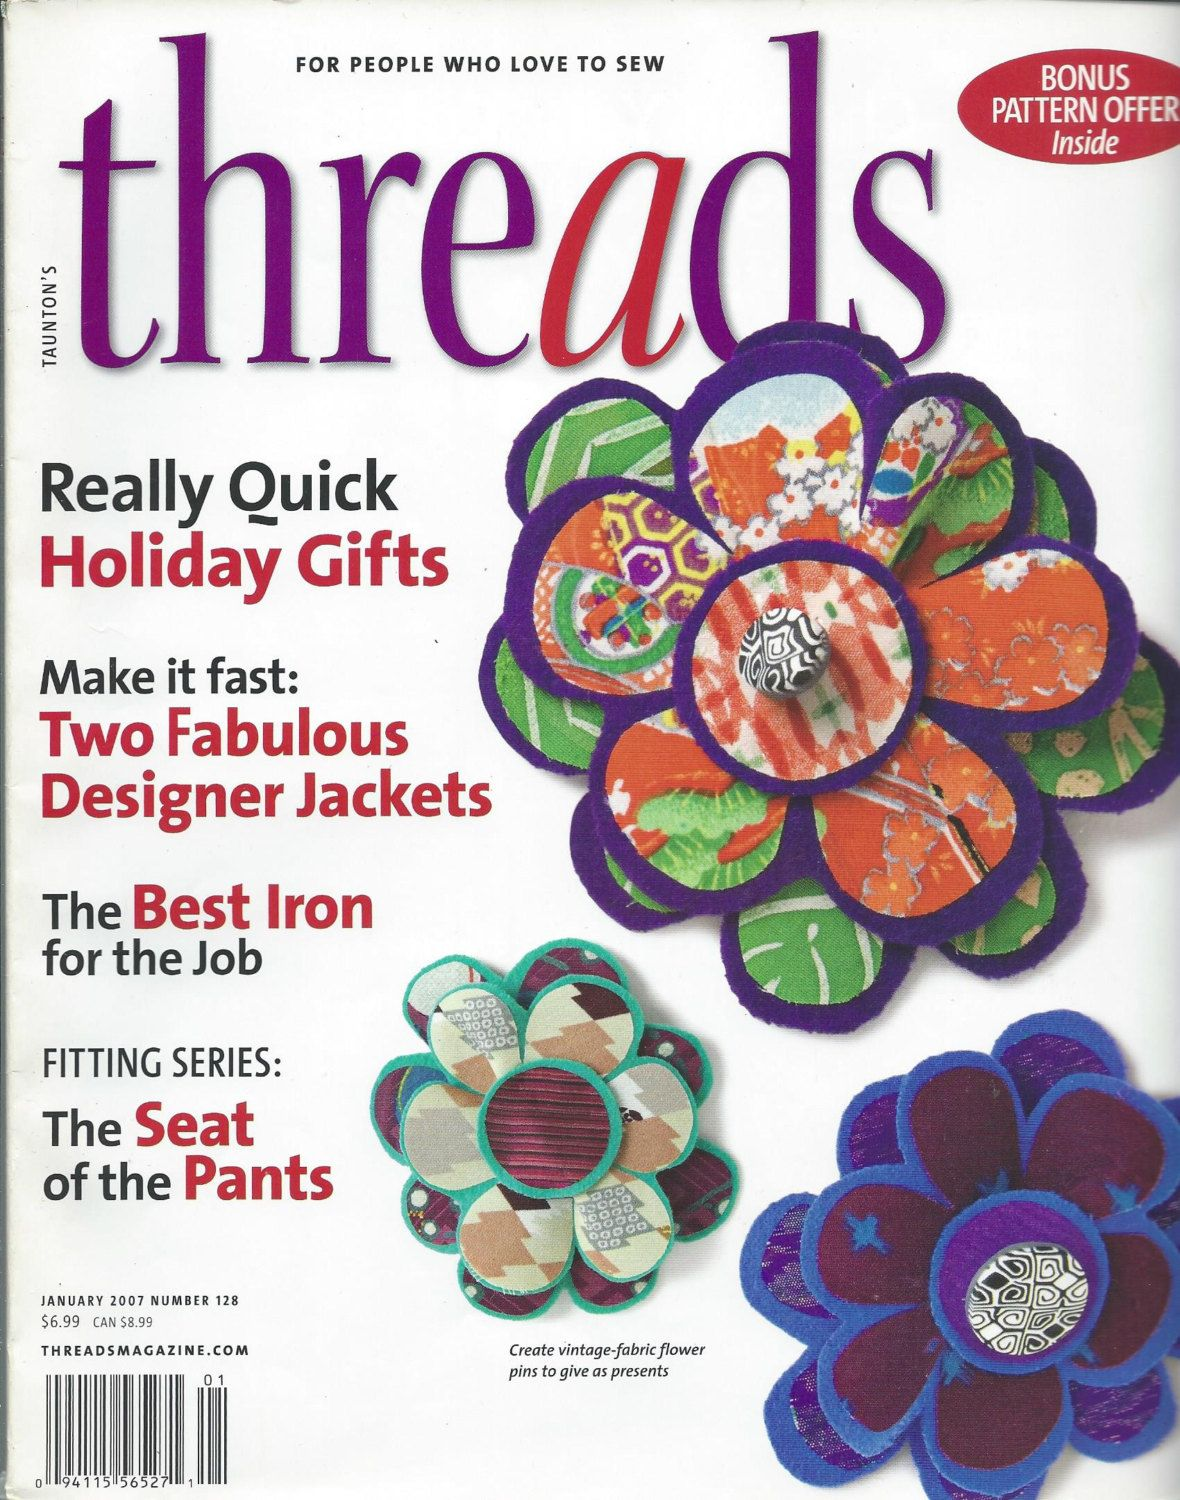 Threads sewing magazine issue holiday gifts designer jackets threads sewing magazine issue holiday gifts designer jackets fitting series jeuxipadfo Choice Image